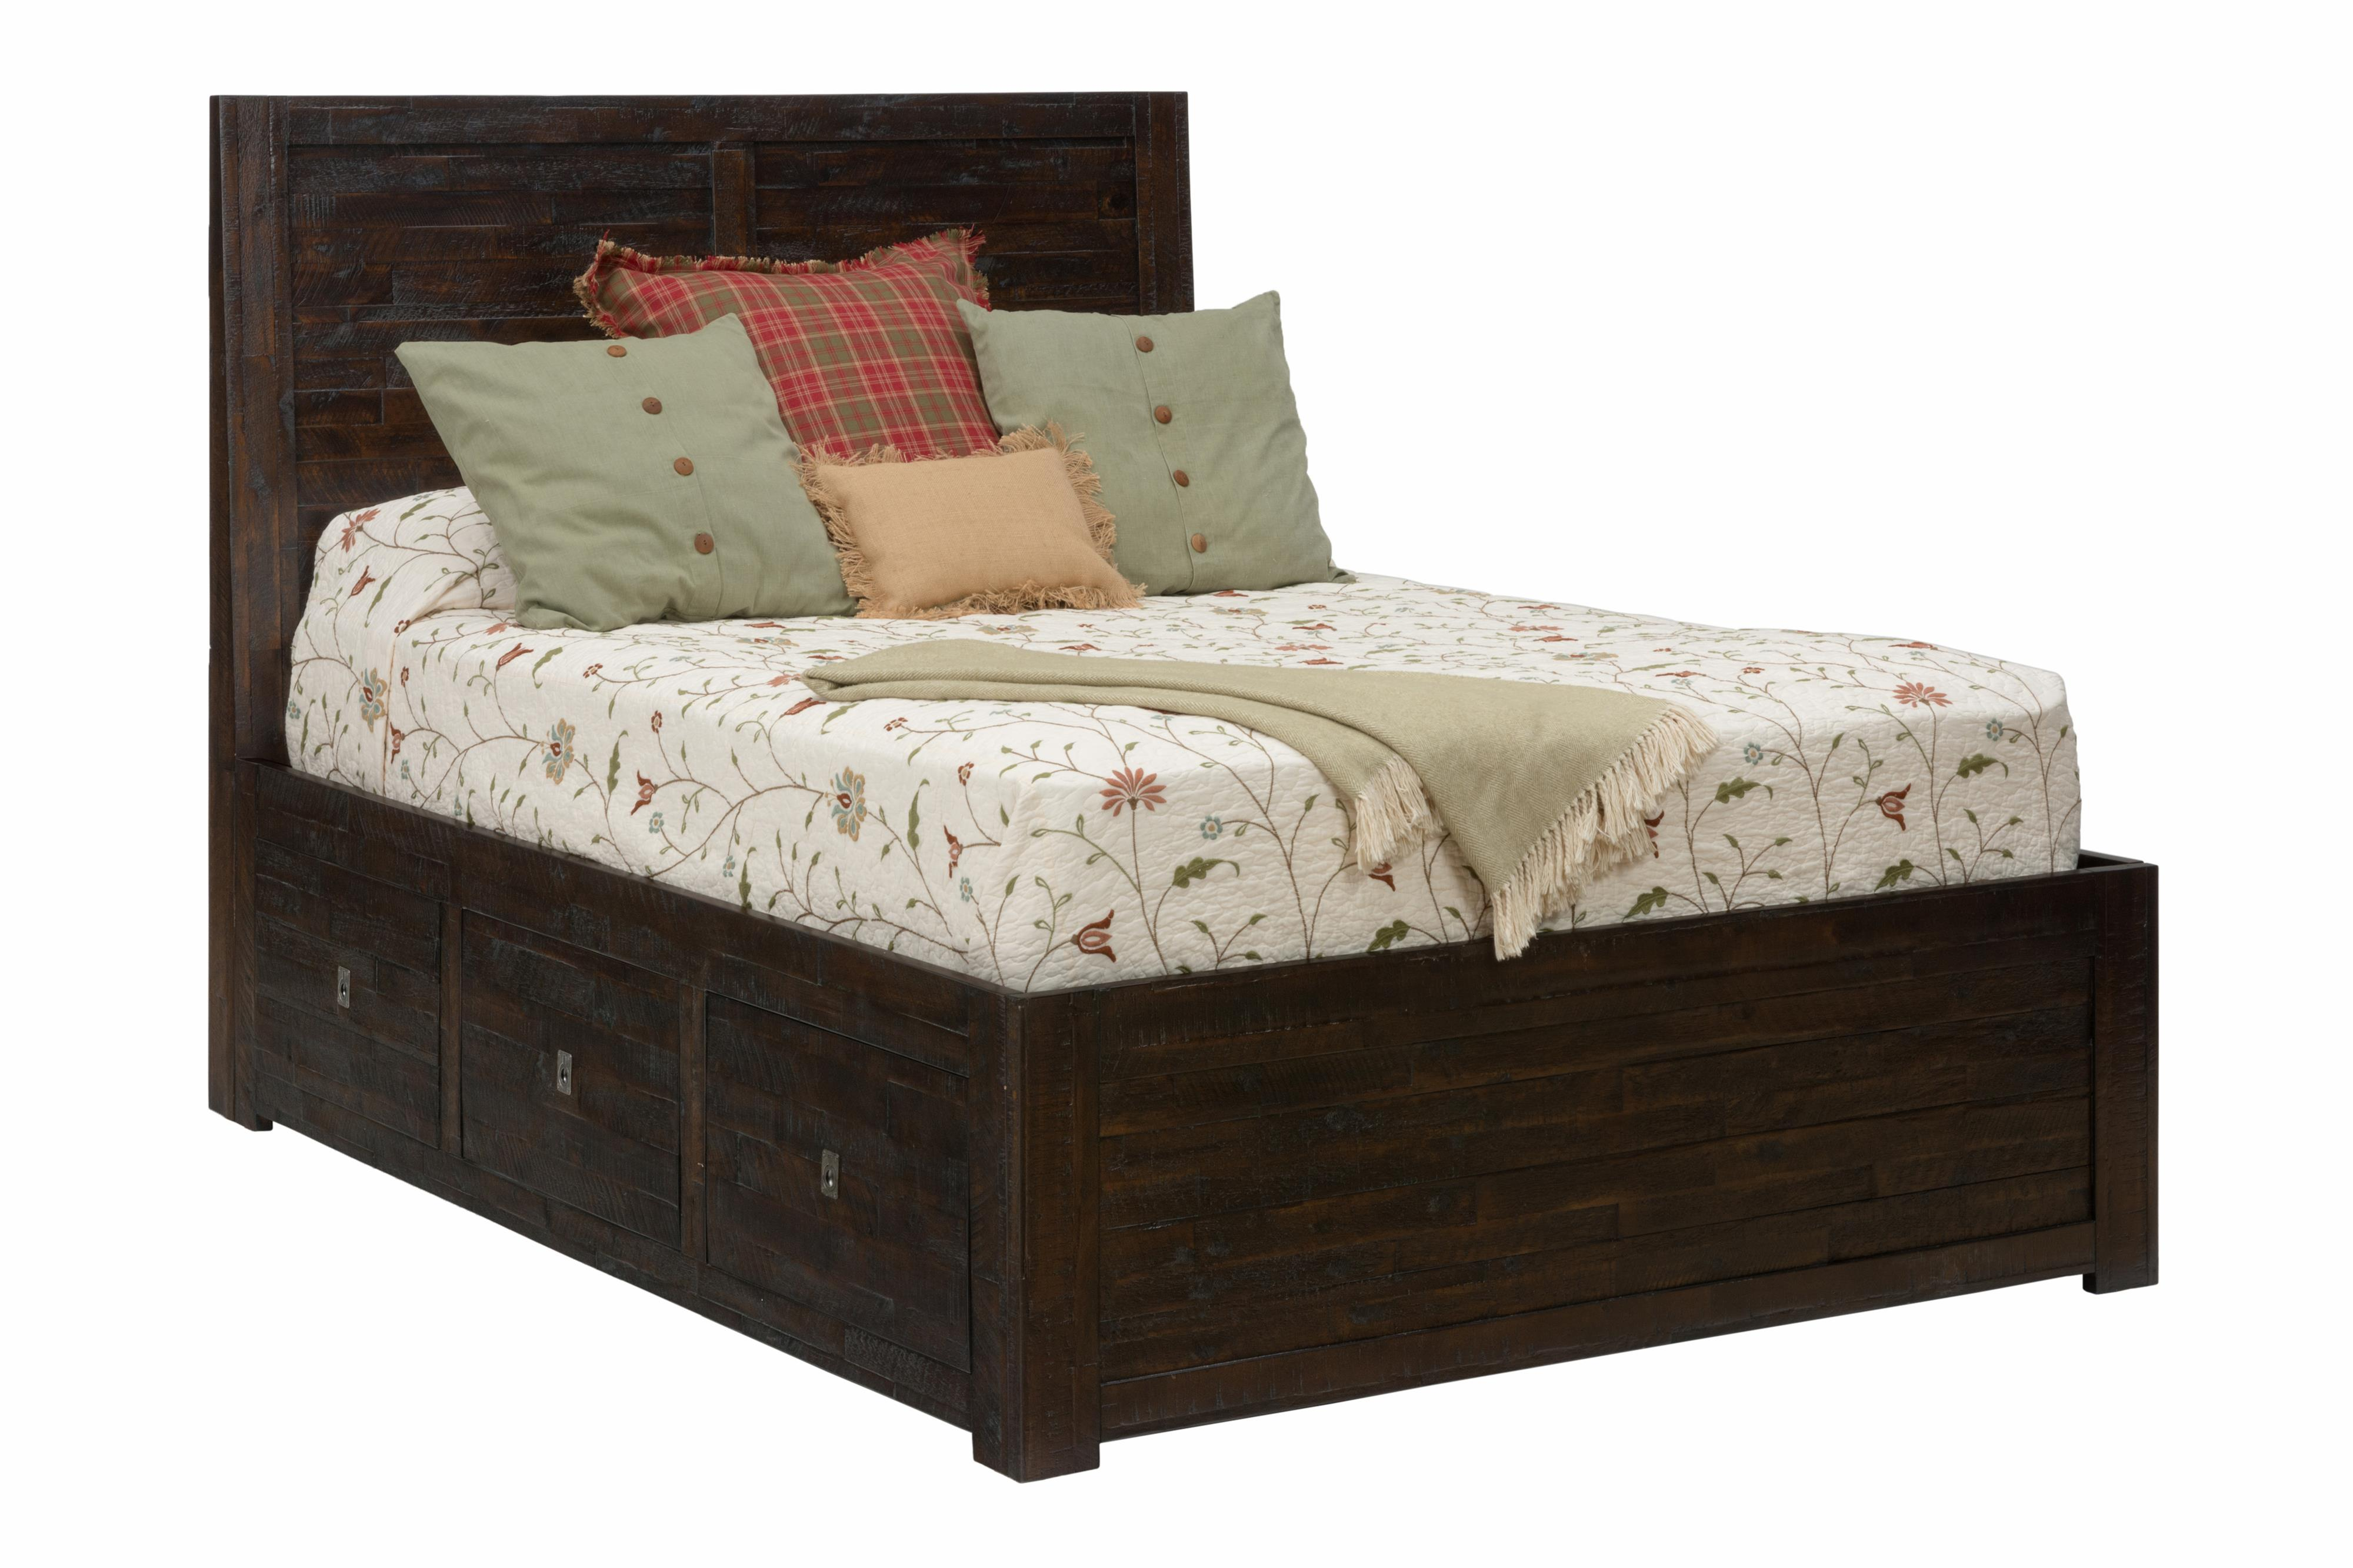 Kona Grove Queen Storage Bed by Jofran at Zak's Home